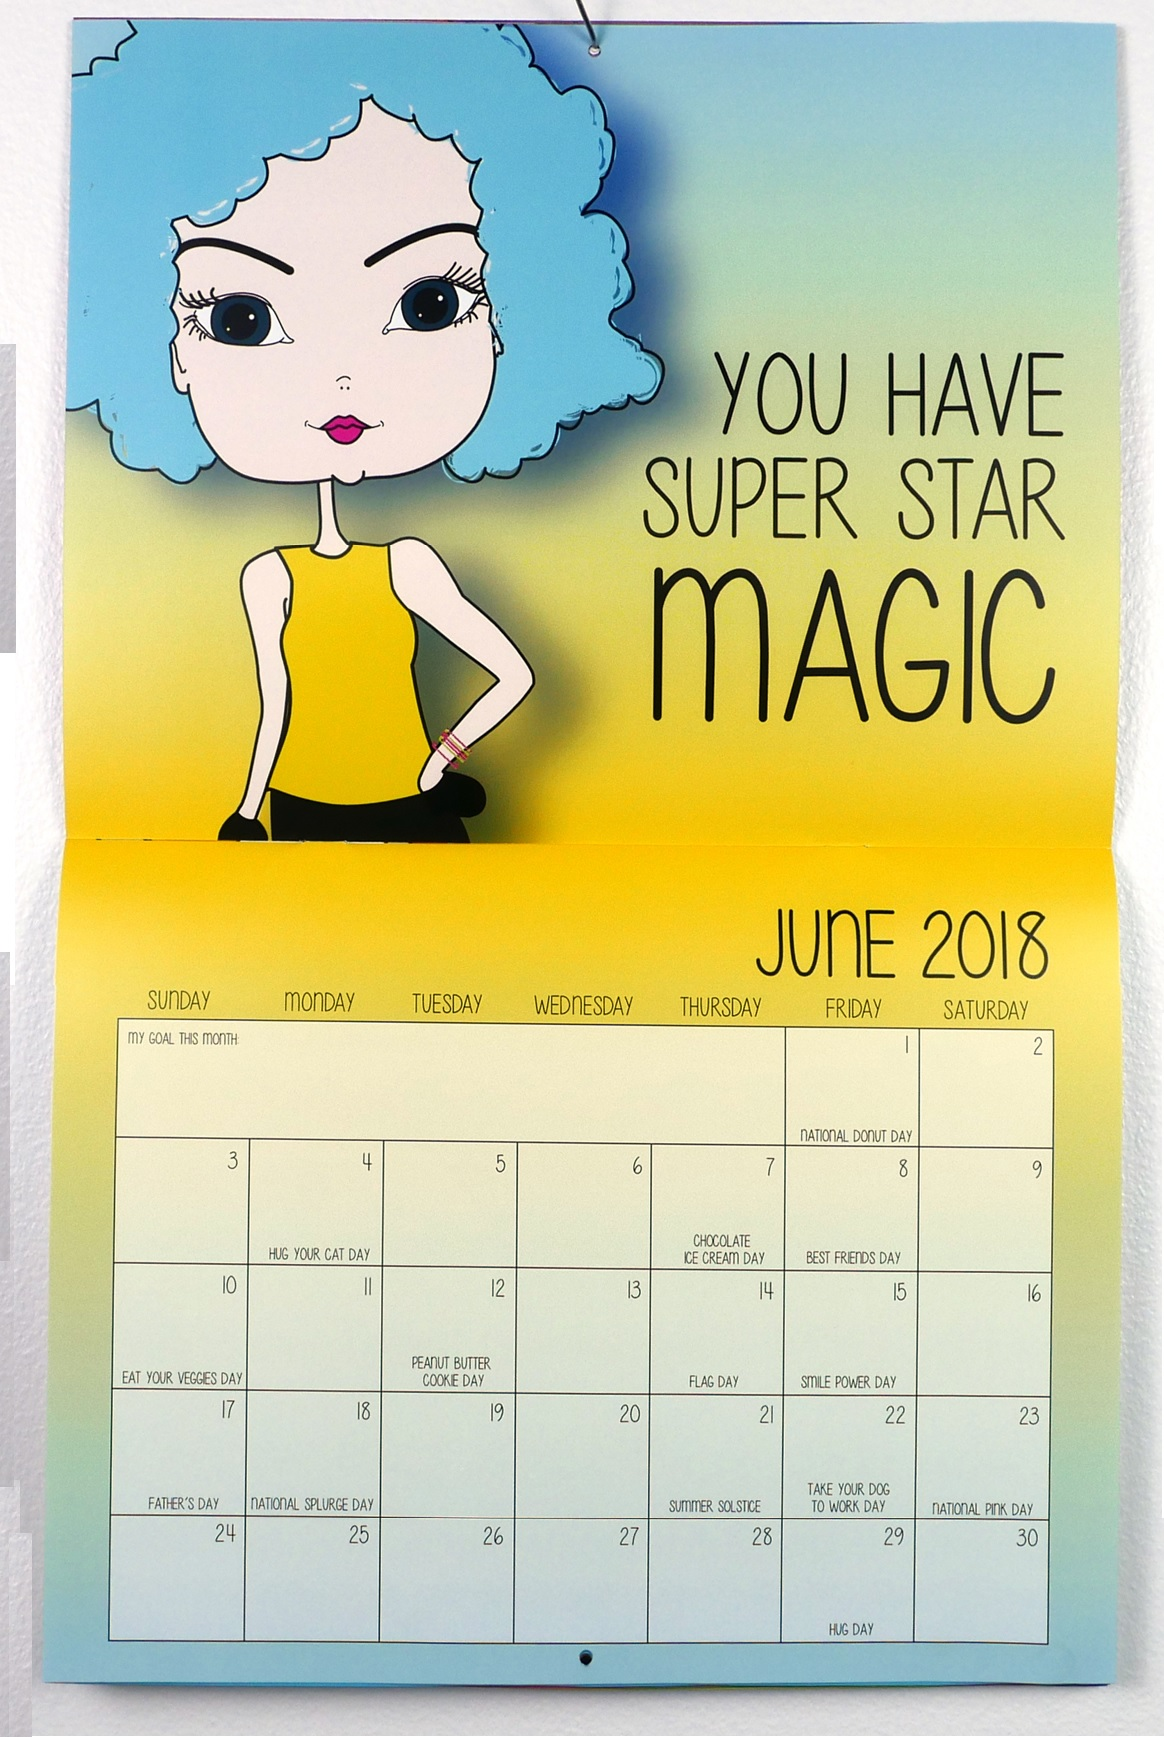 June 2018 Motivational Quotes Calendar